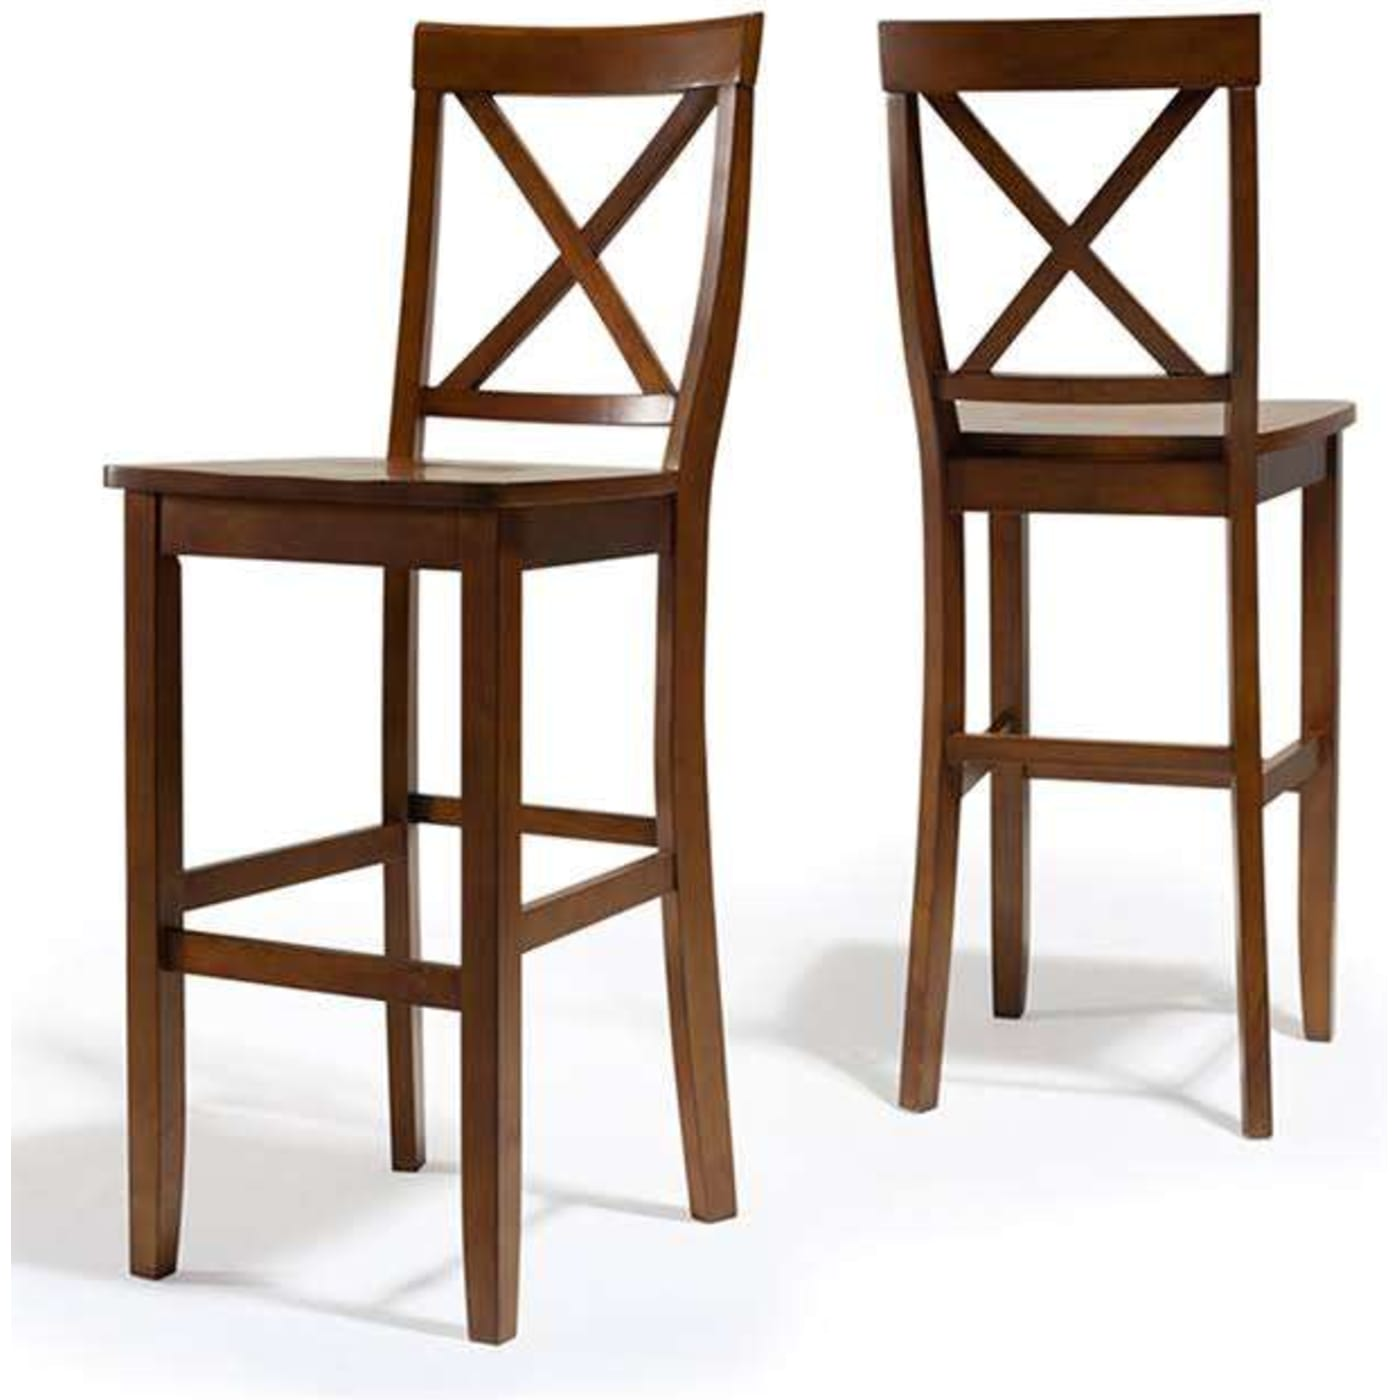 Crosley X Back Bar Stool In Classic Cherry Finish With 30